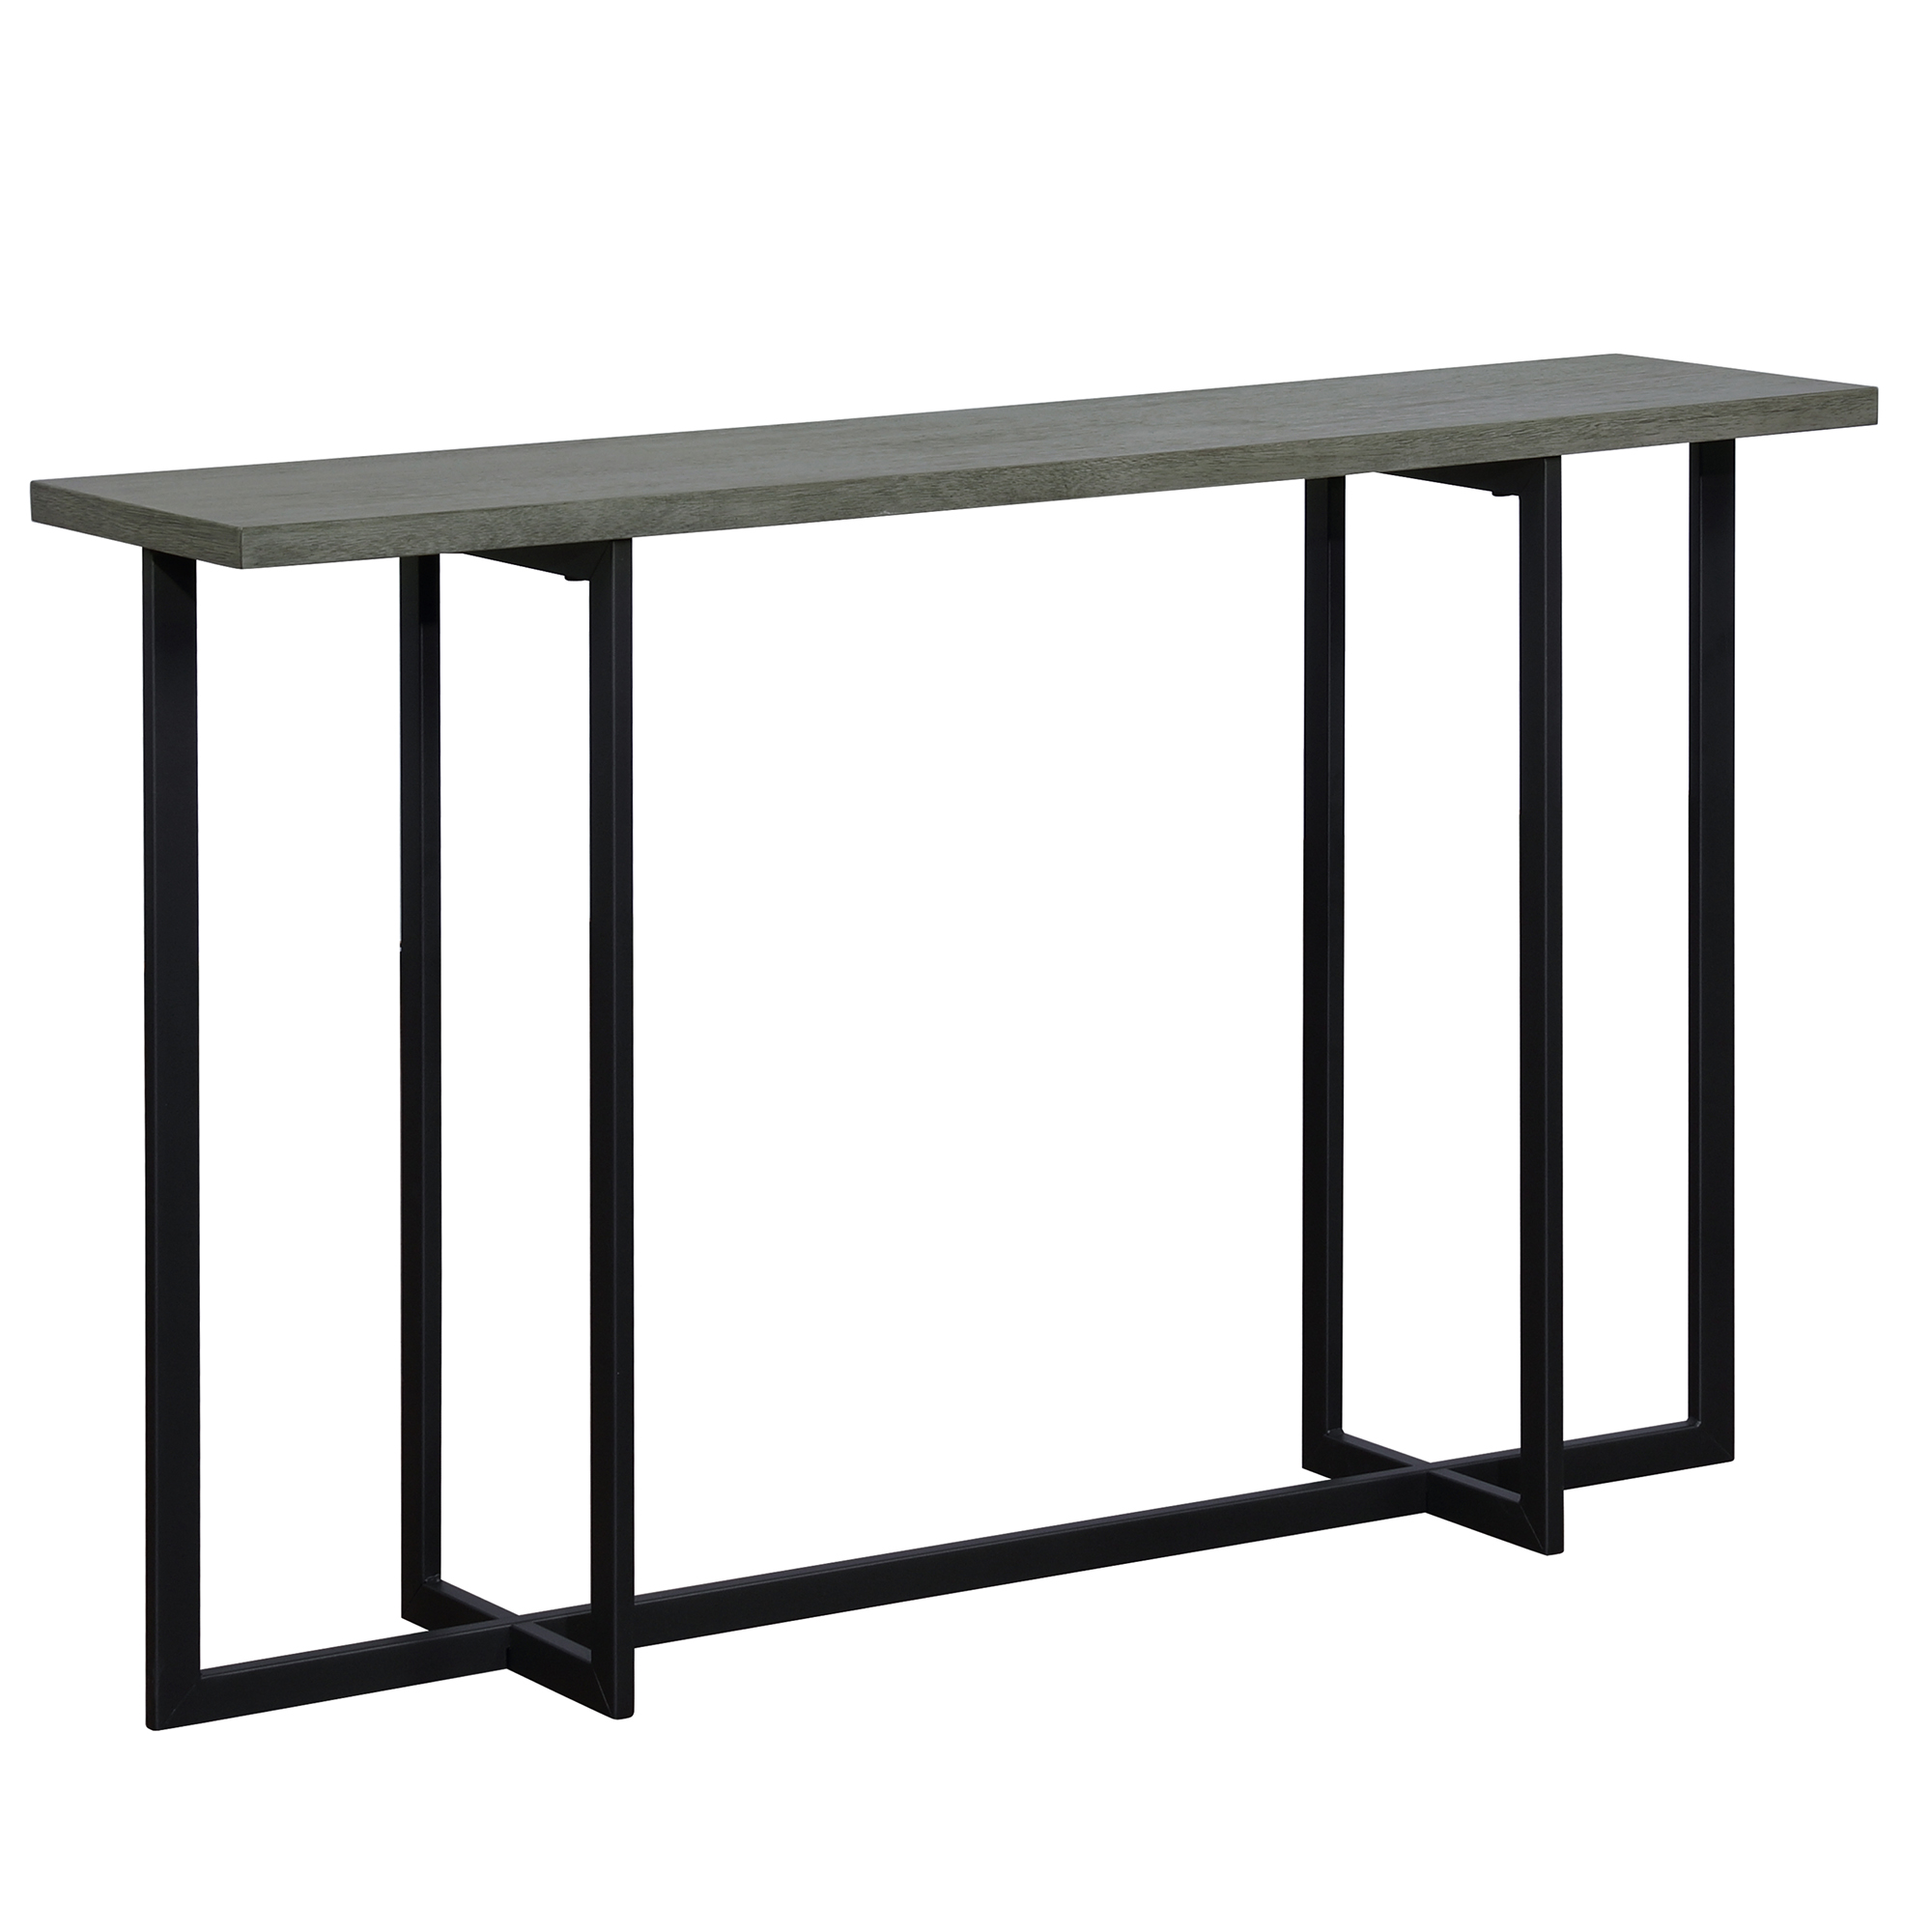 Modern MDF & Metal Console Table in Grey